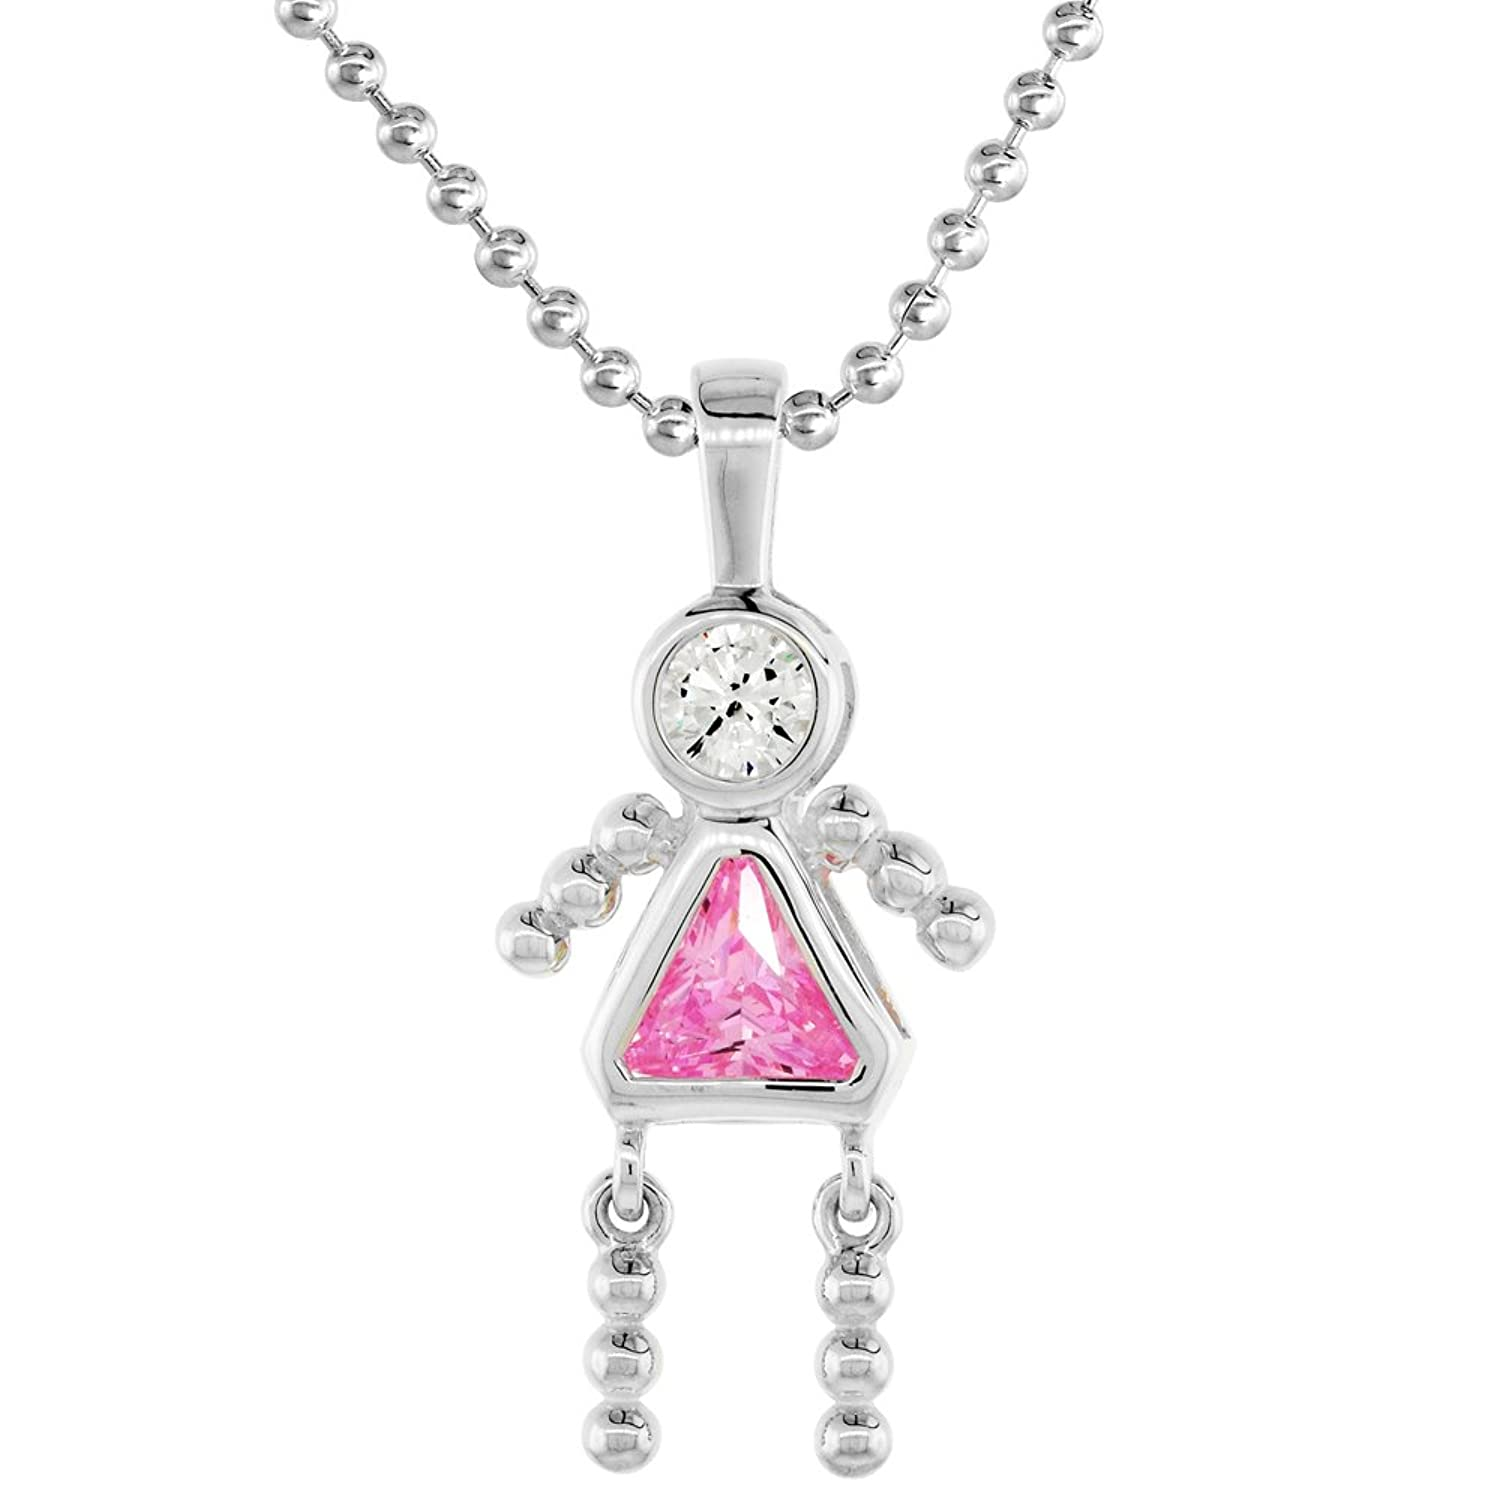 birthstone locket else grandkid crystal sparkle our of swarovski these they who popular most to your necklace some in belong then by crystals any charms brilliantly are loves and pin shine